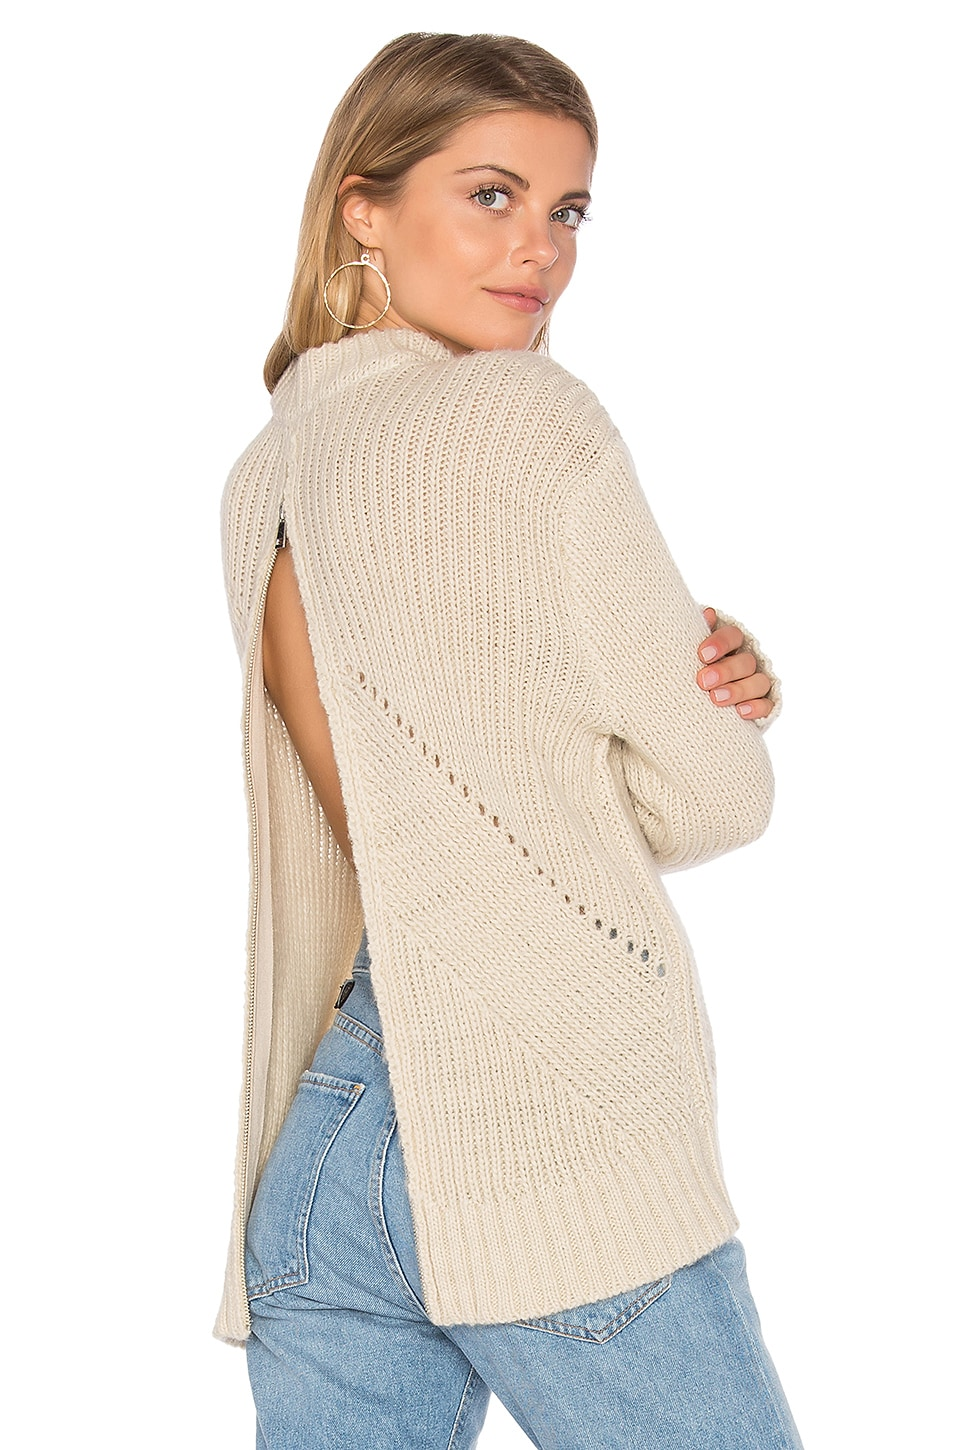 Leigh Sweater by Dolce Vita